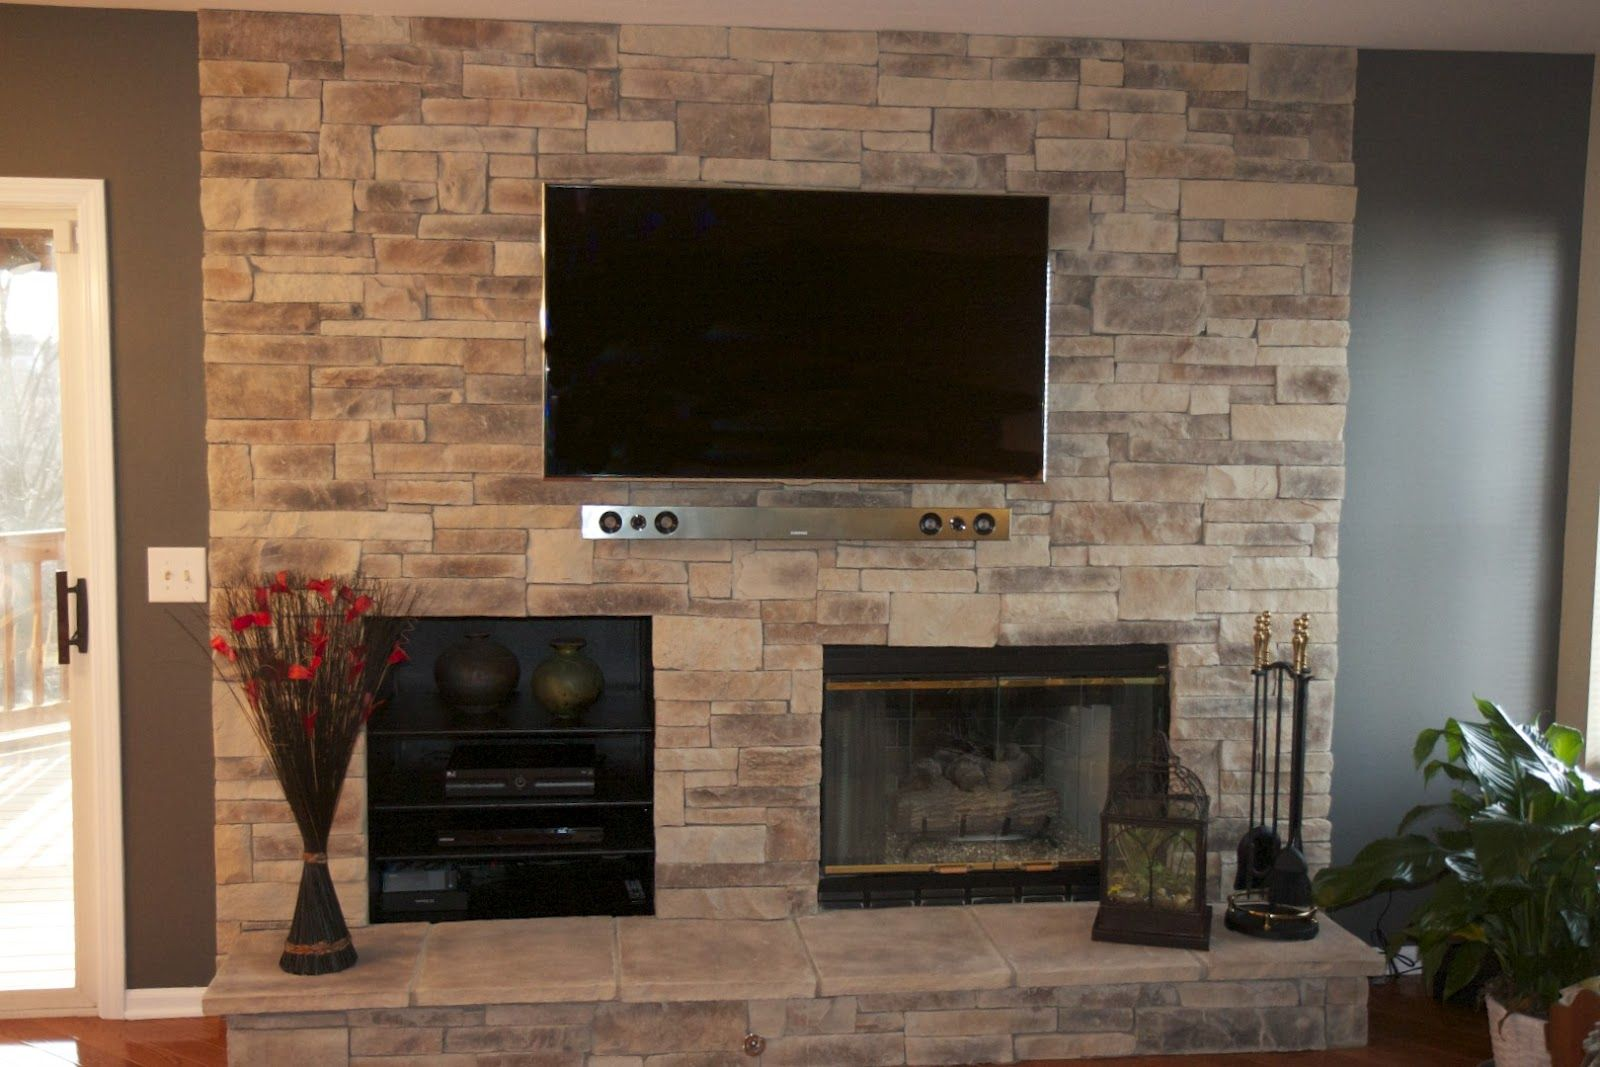 feature walls with tv and fireplace inspiring stone fireplace wall ideas with cream brick stone and - Stone Fireplace Design Ideas